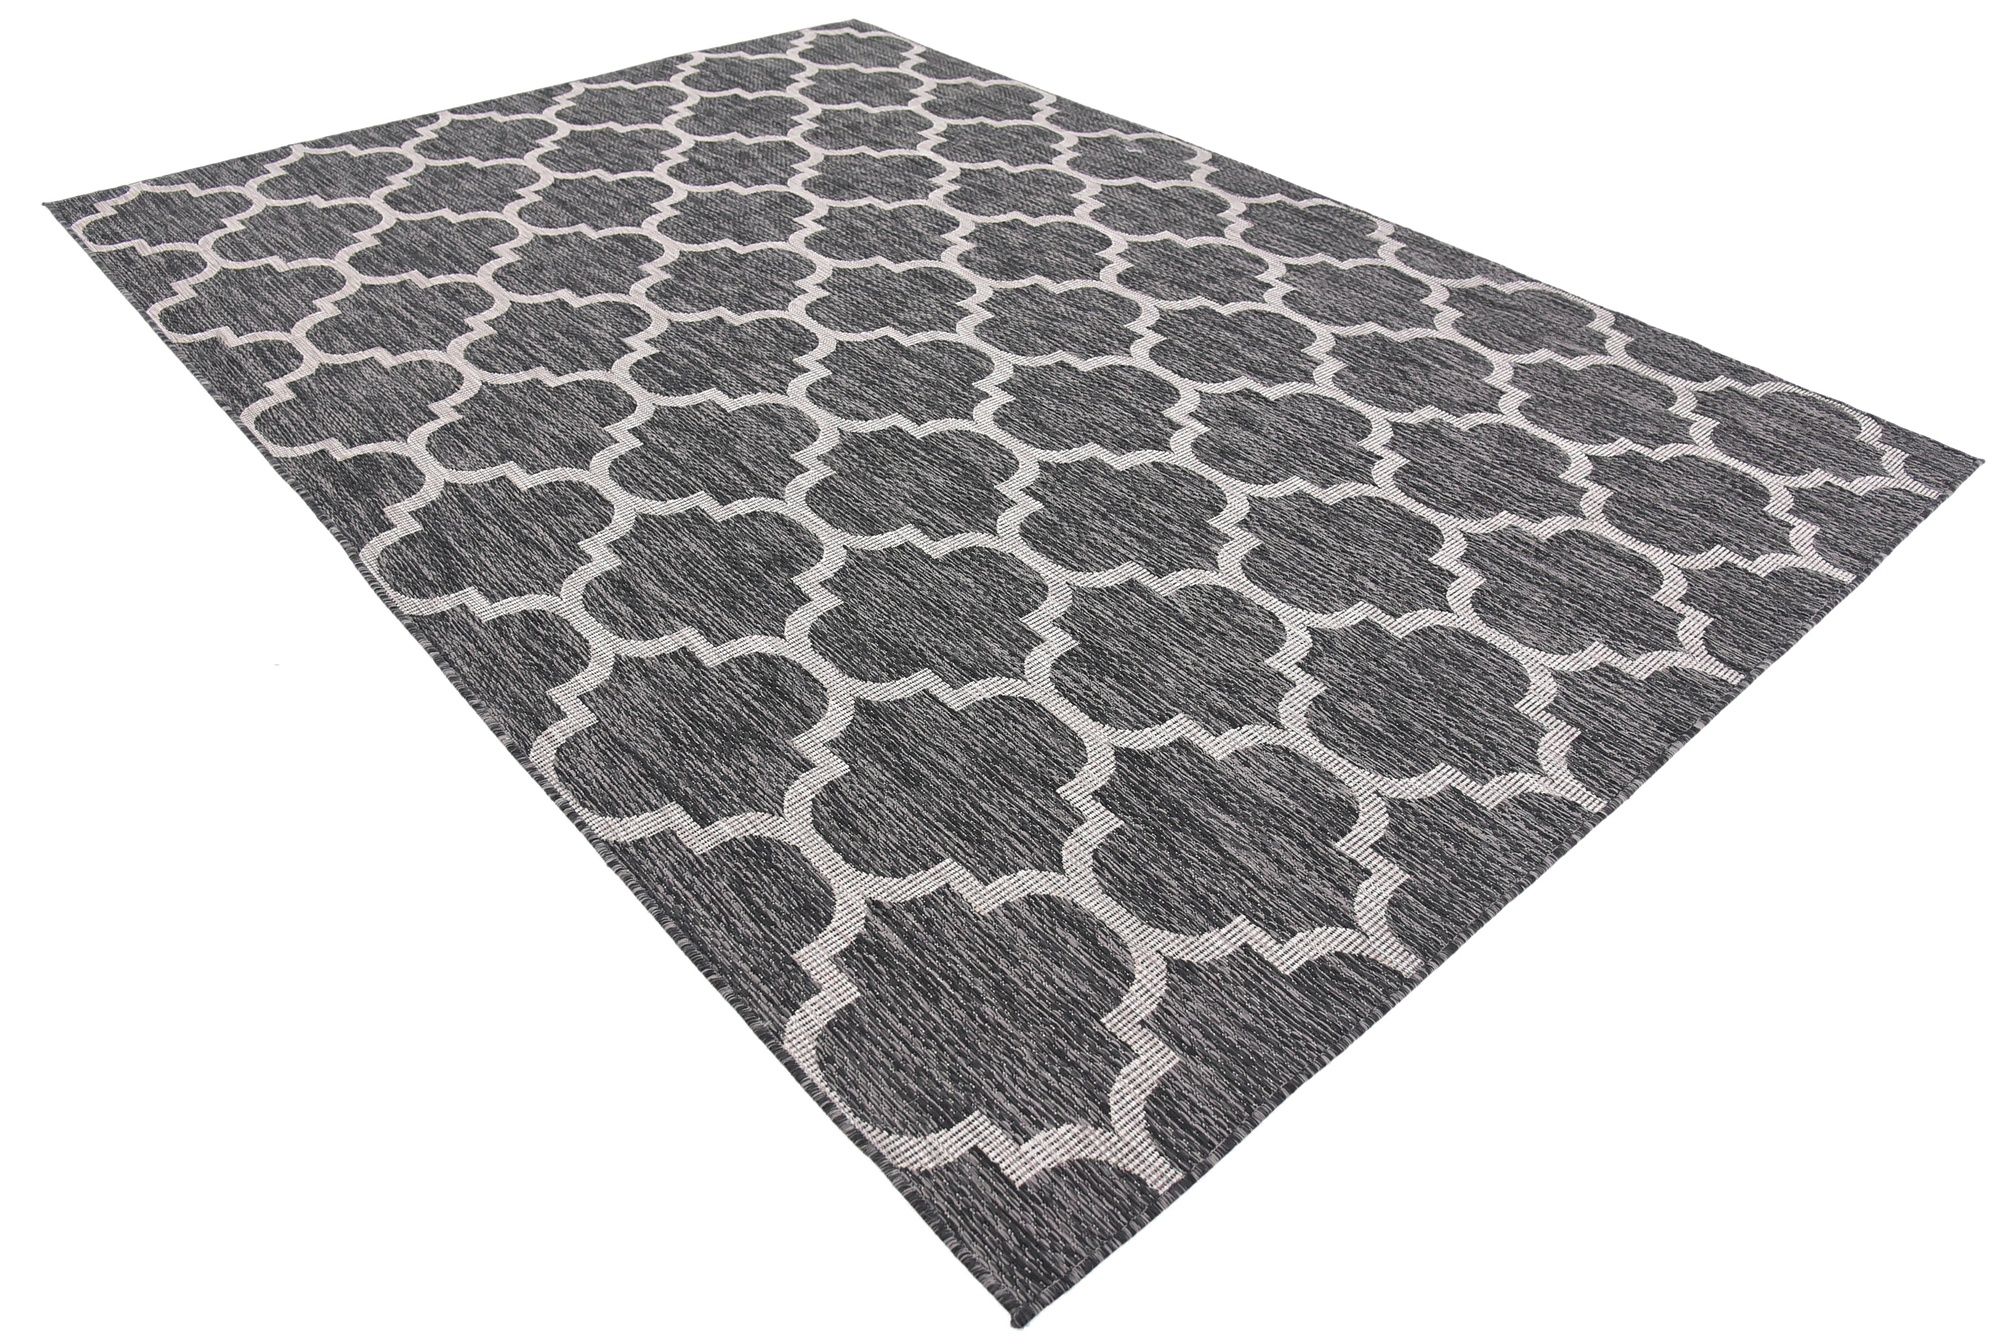 Modern Geometric Contemporary Moroccan Style Carpet Large